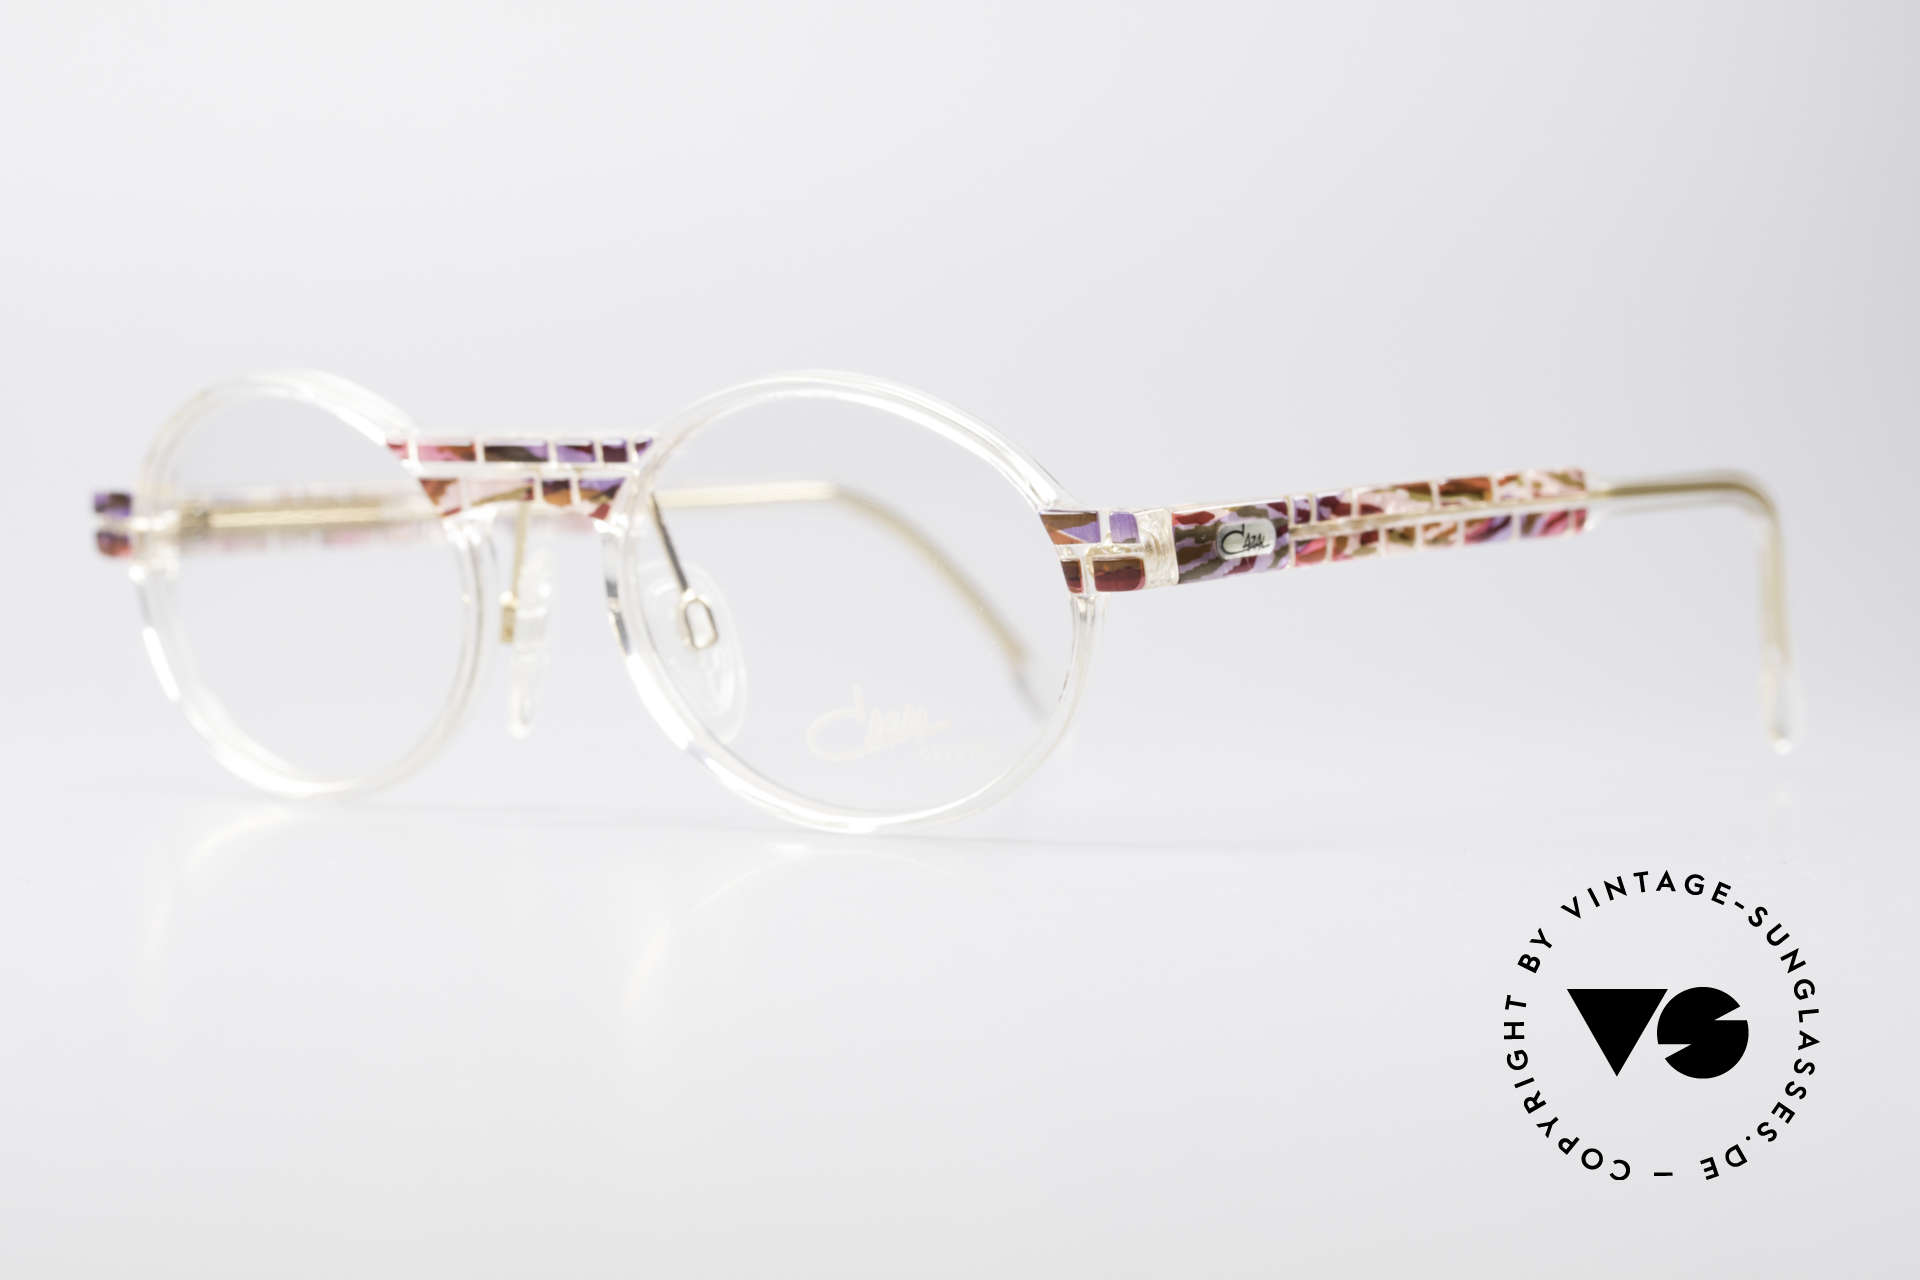 Cazal 510 Crystal Limited Vintage Specs, special edition with crystal clear frame - truly unique!, Made for Women